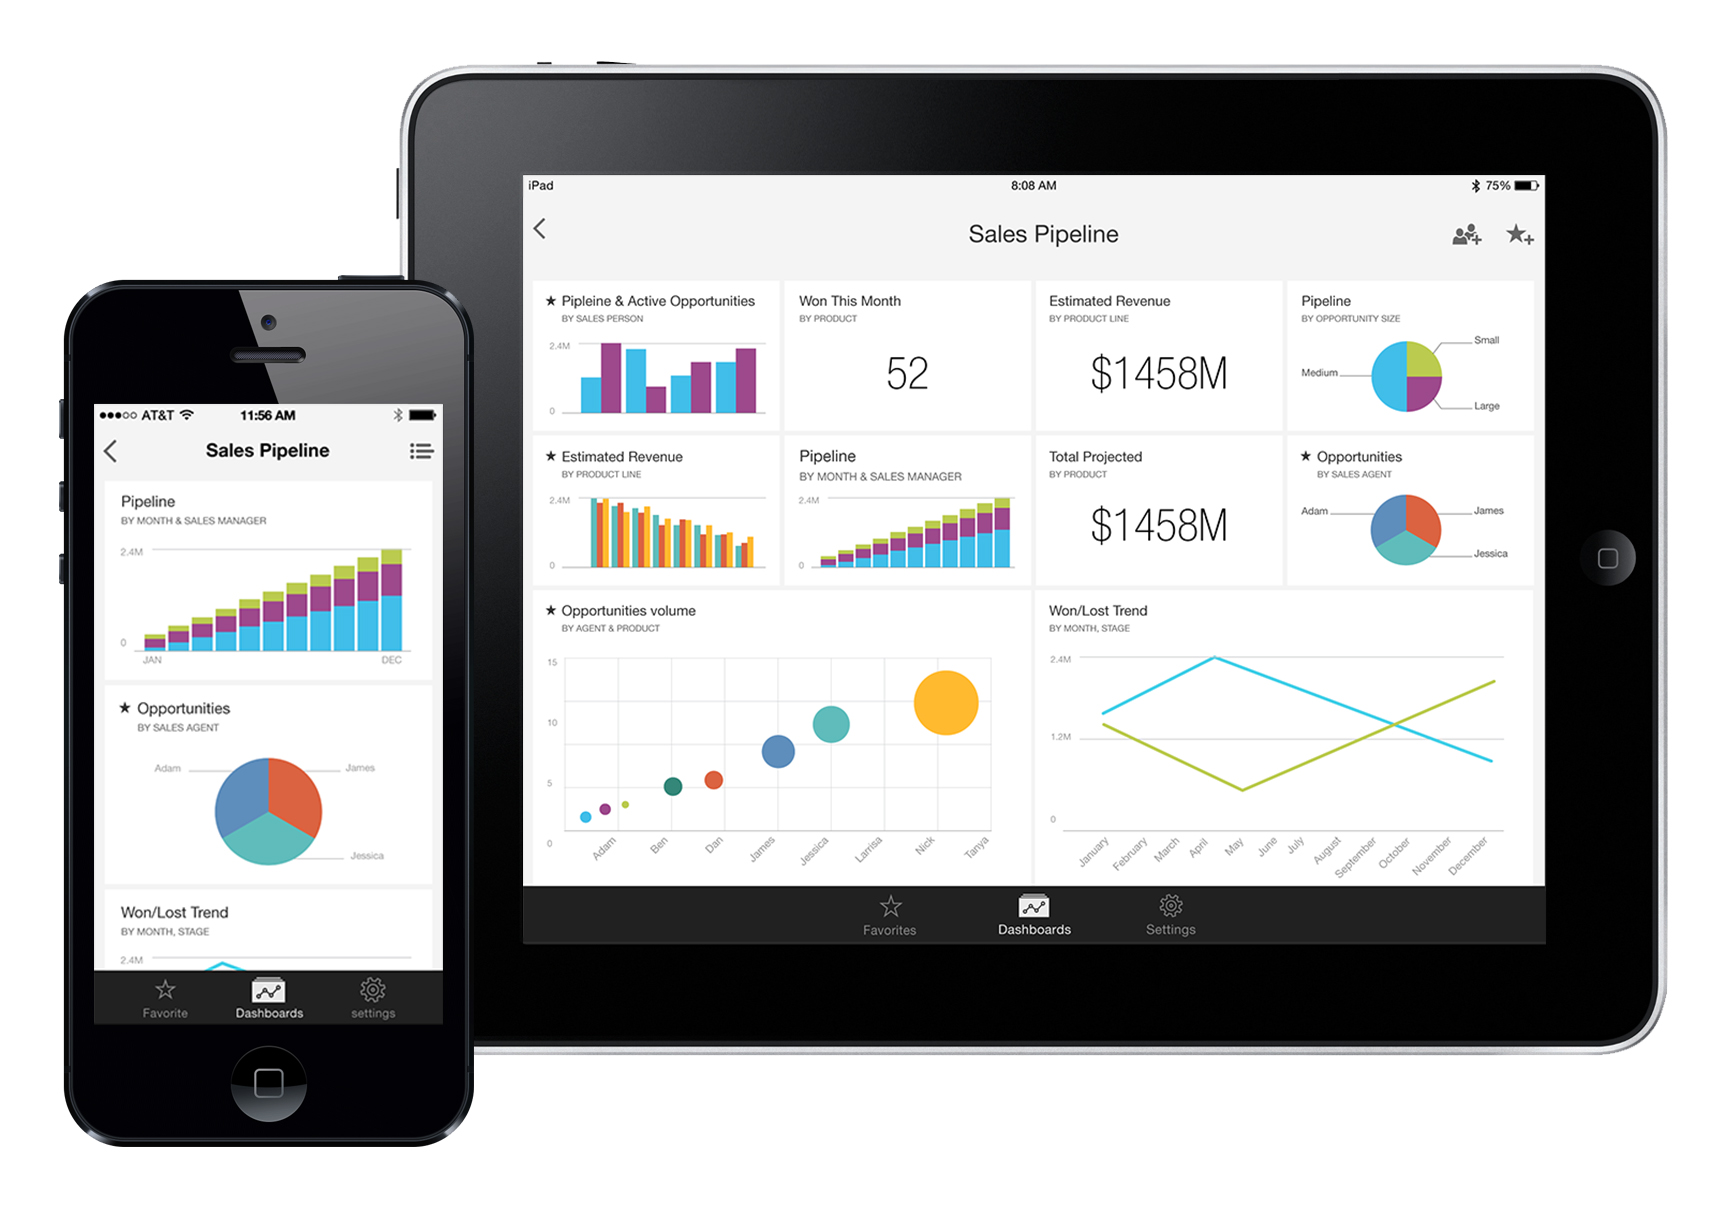 Microsoft Power BI Dashboard on Mobile Device and Tablet